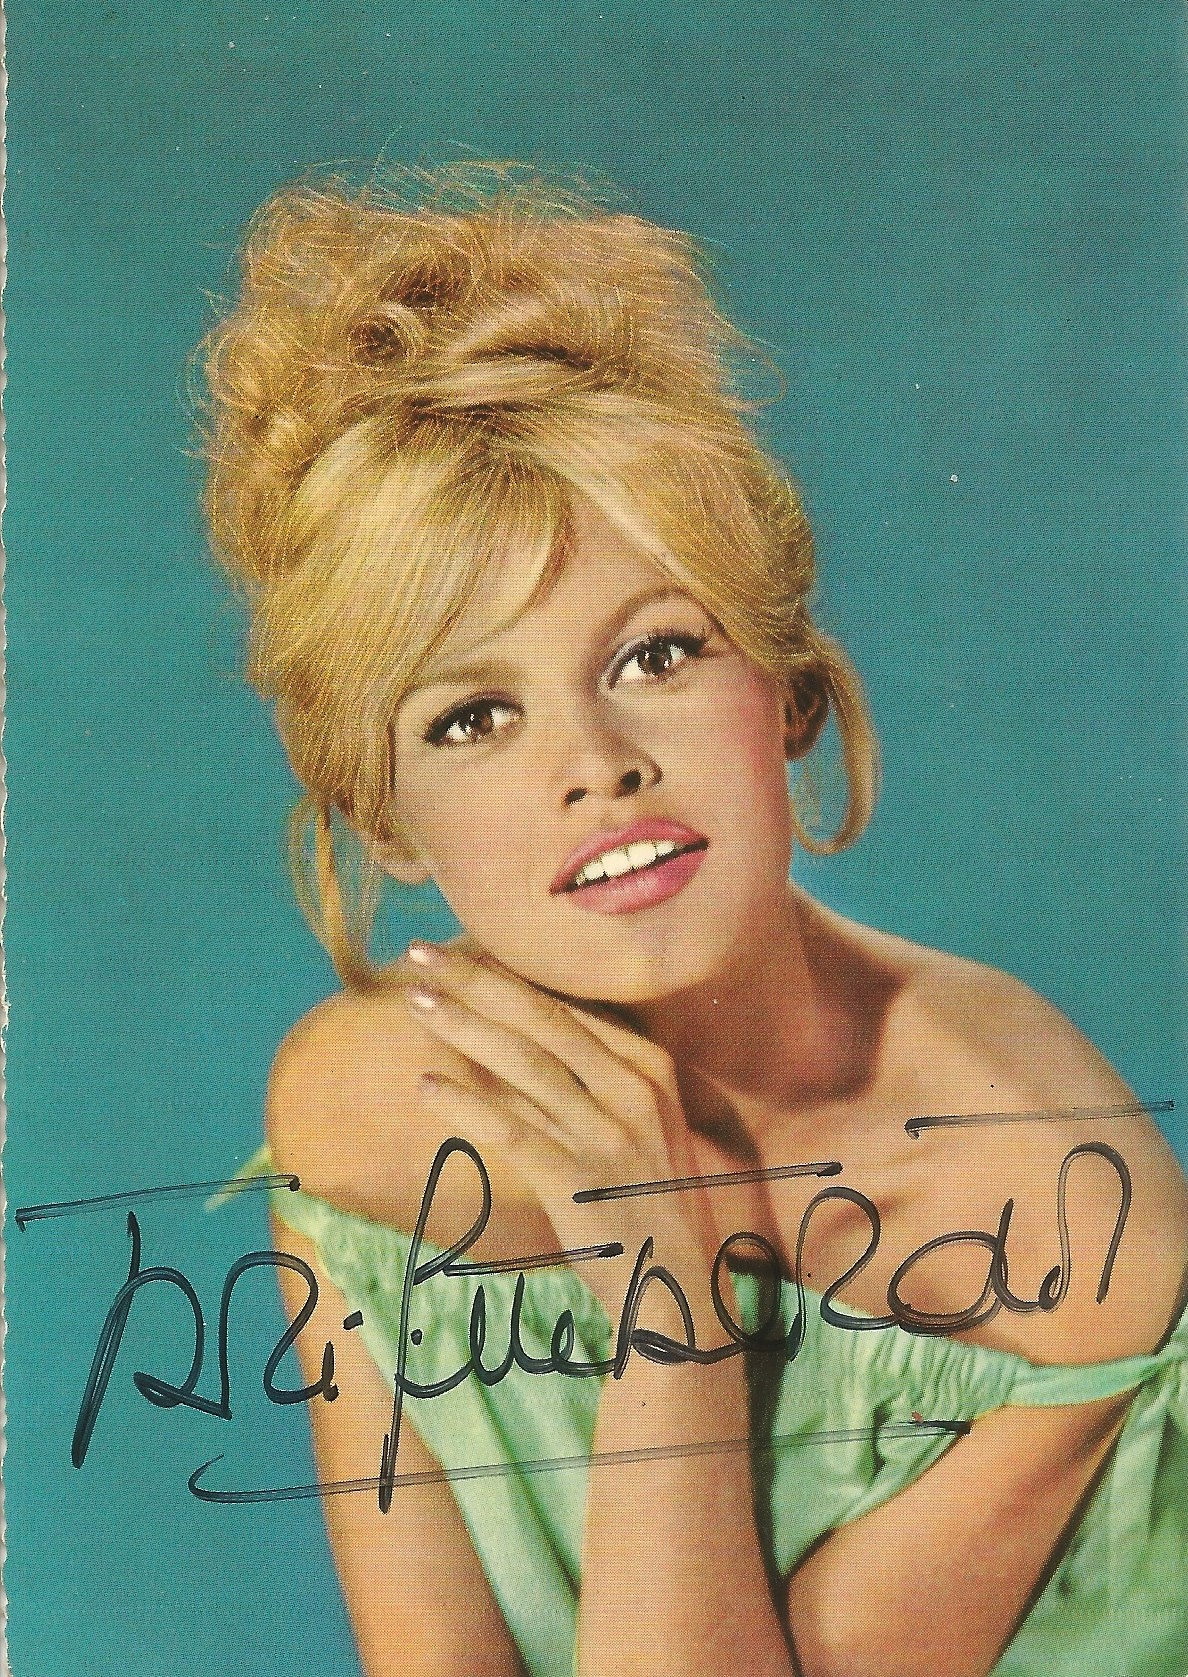 Brigitte Bardot signed 6x4 colour photo. Good condition. All autographs come with a Certificate of